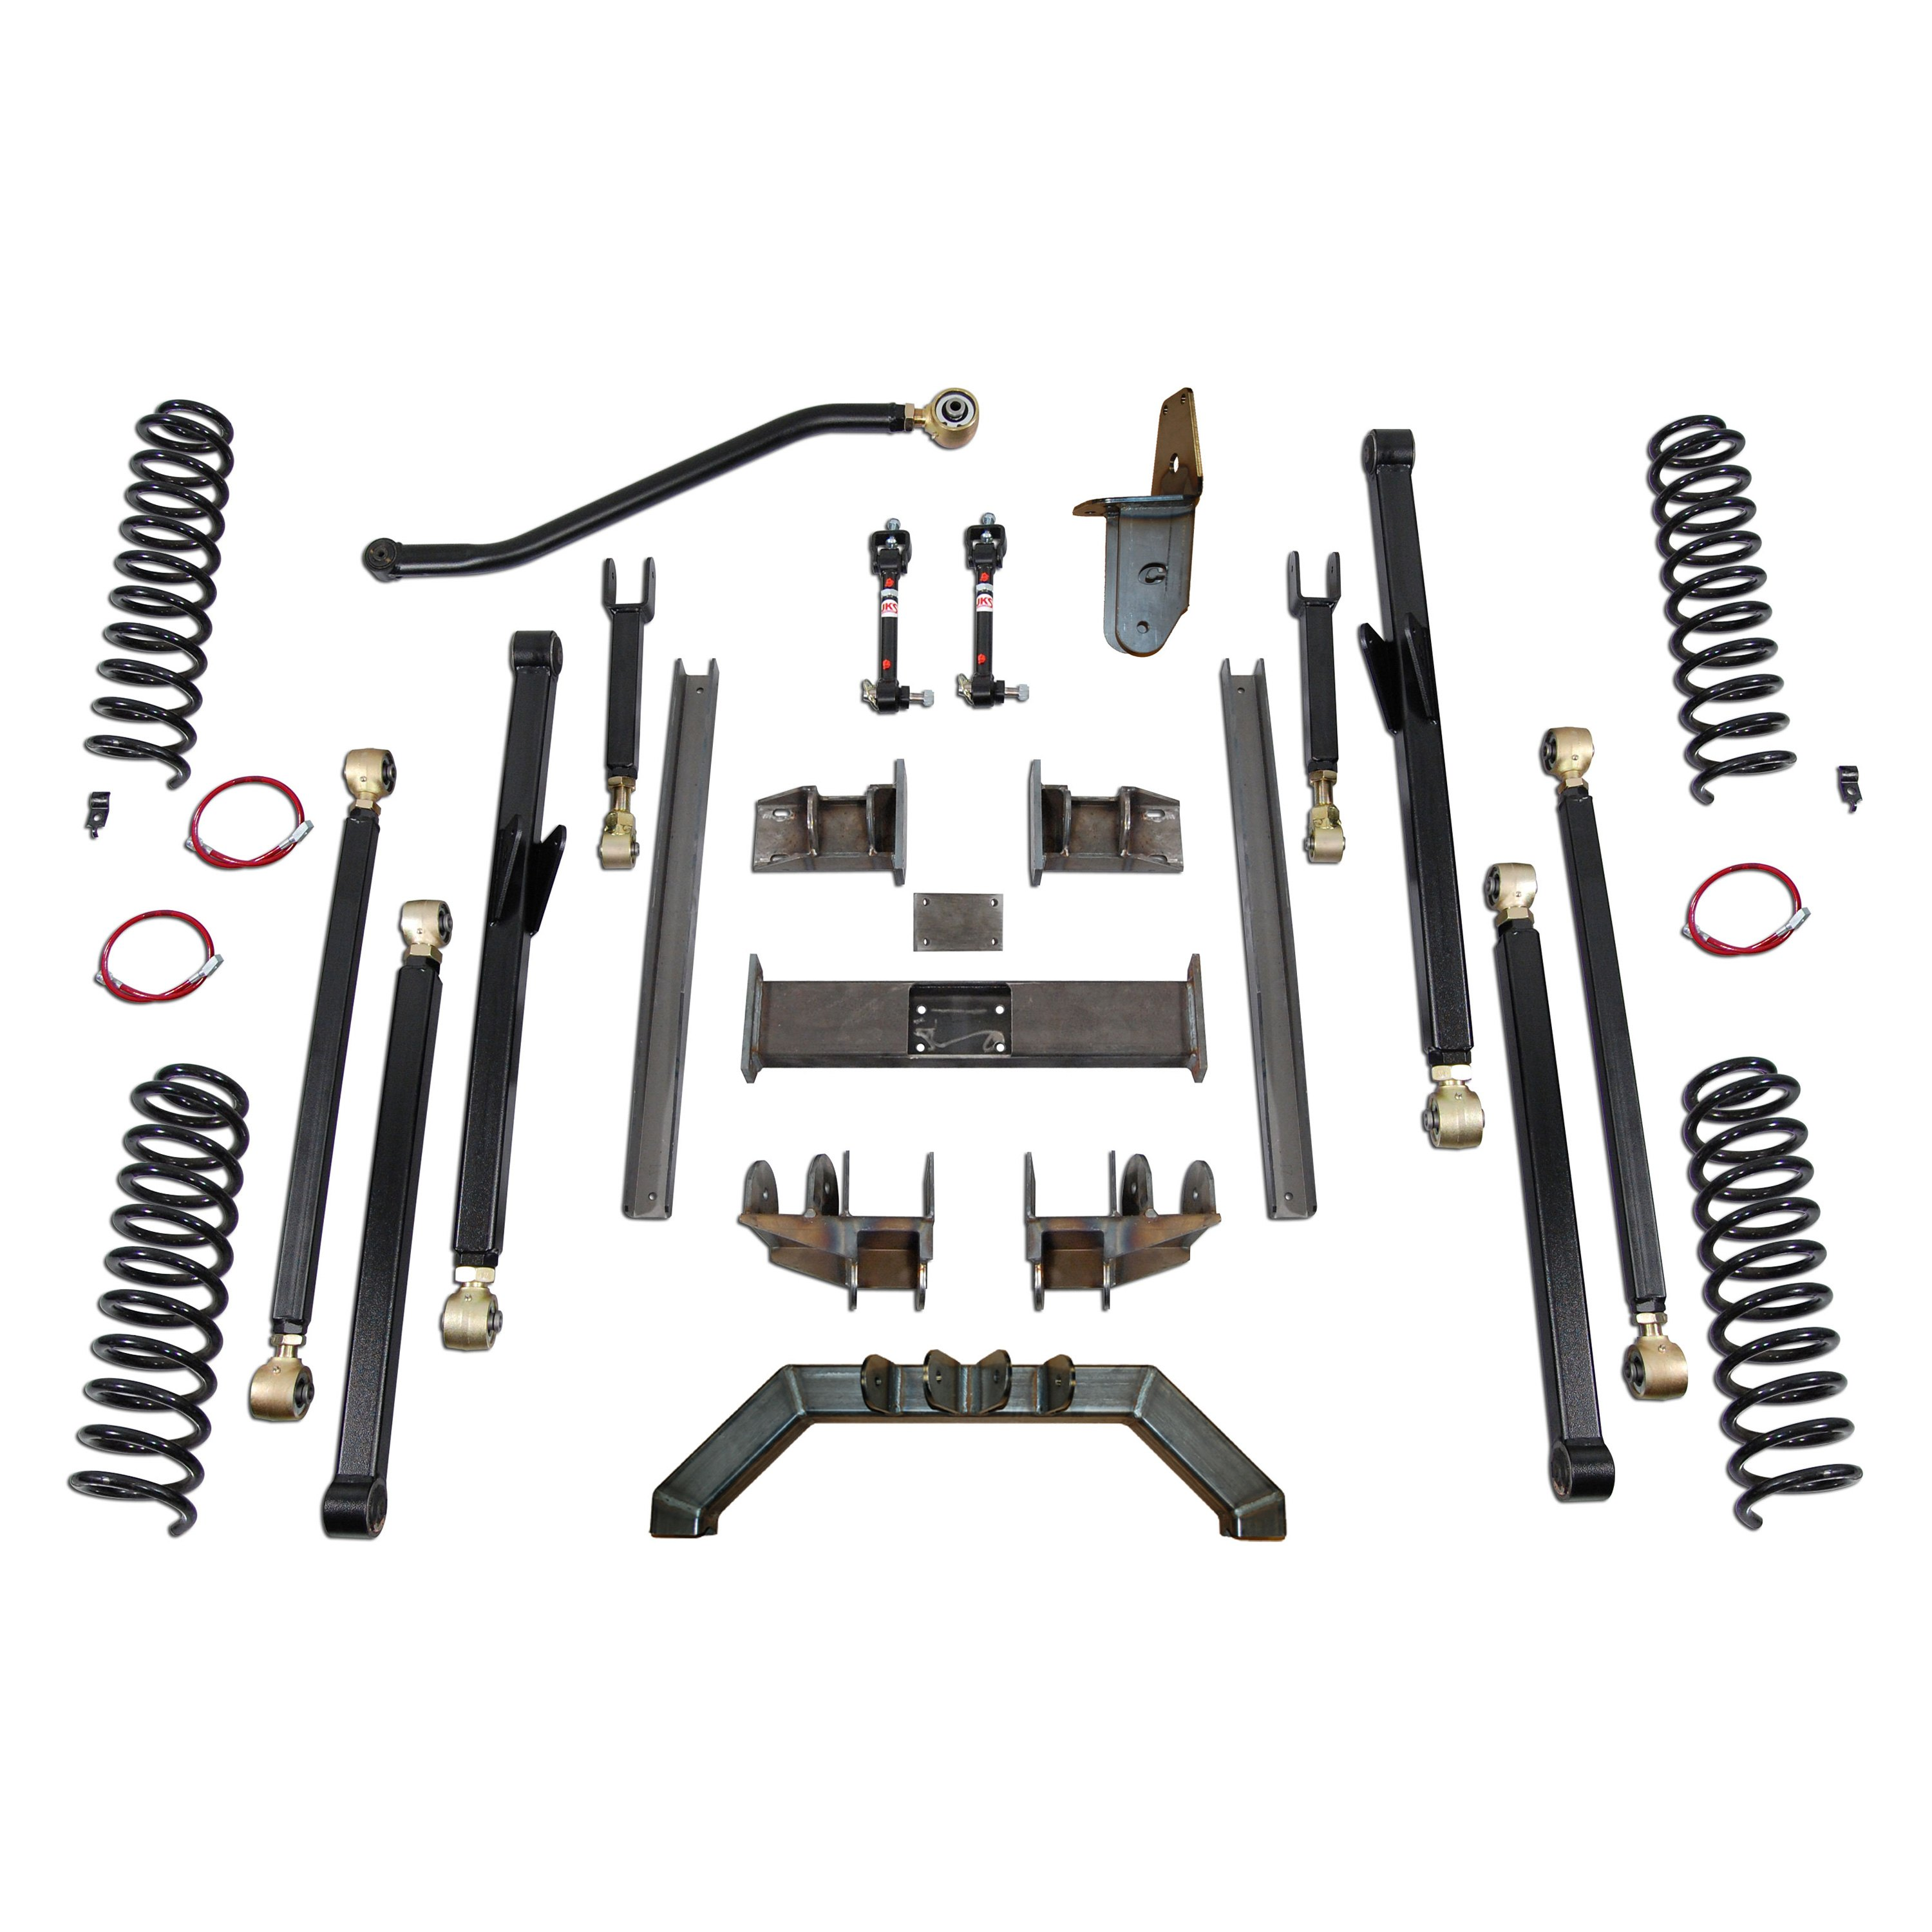 For Jeep Grand Cherokee 96-98 Long-Travel Suspension Lift